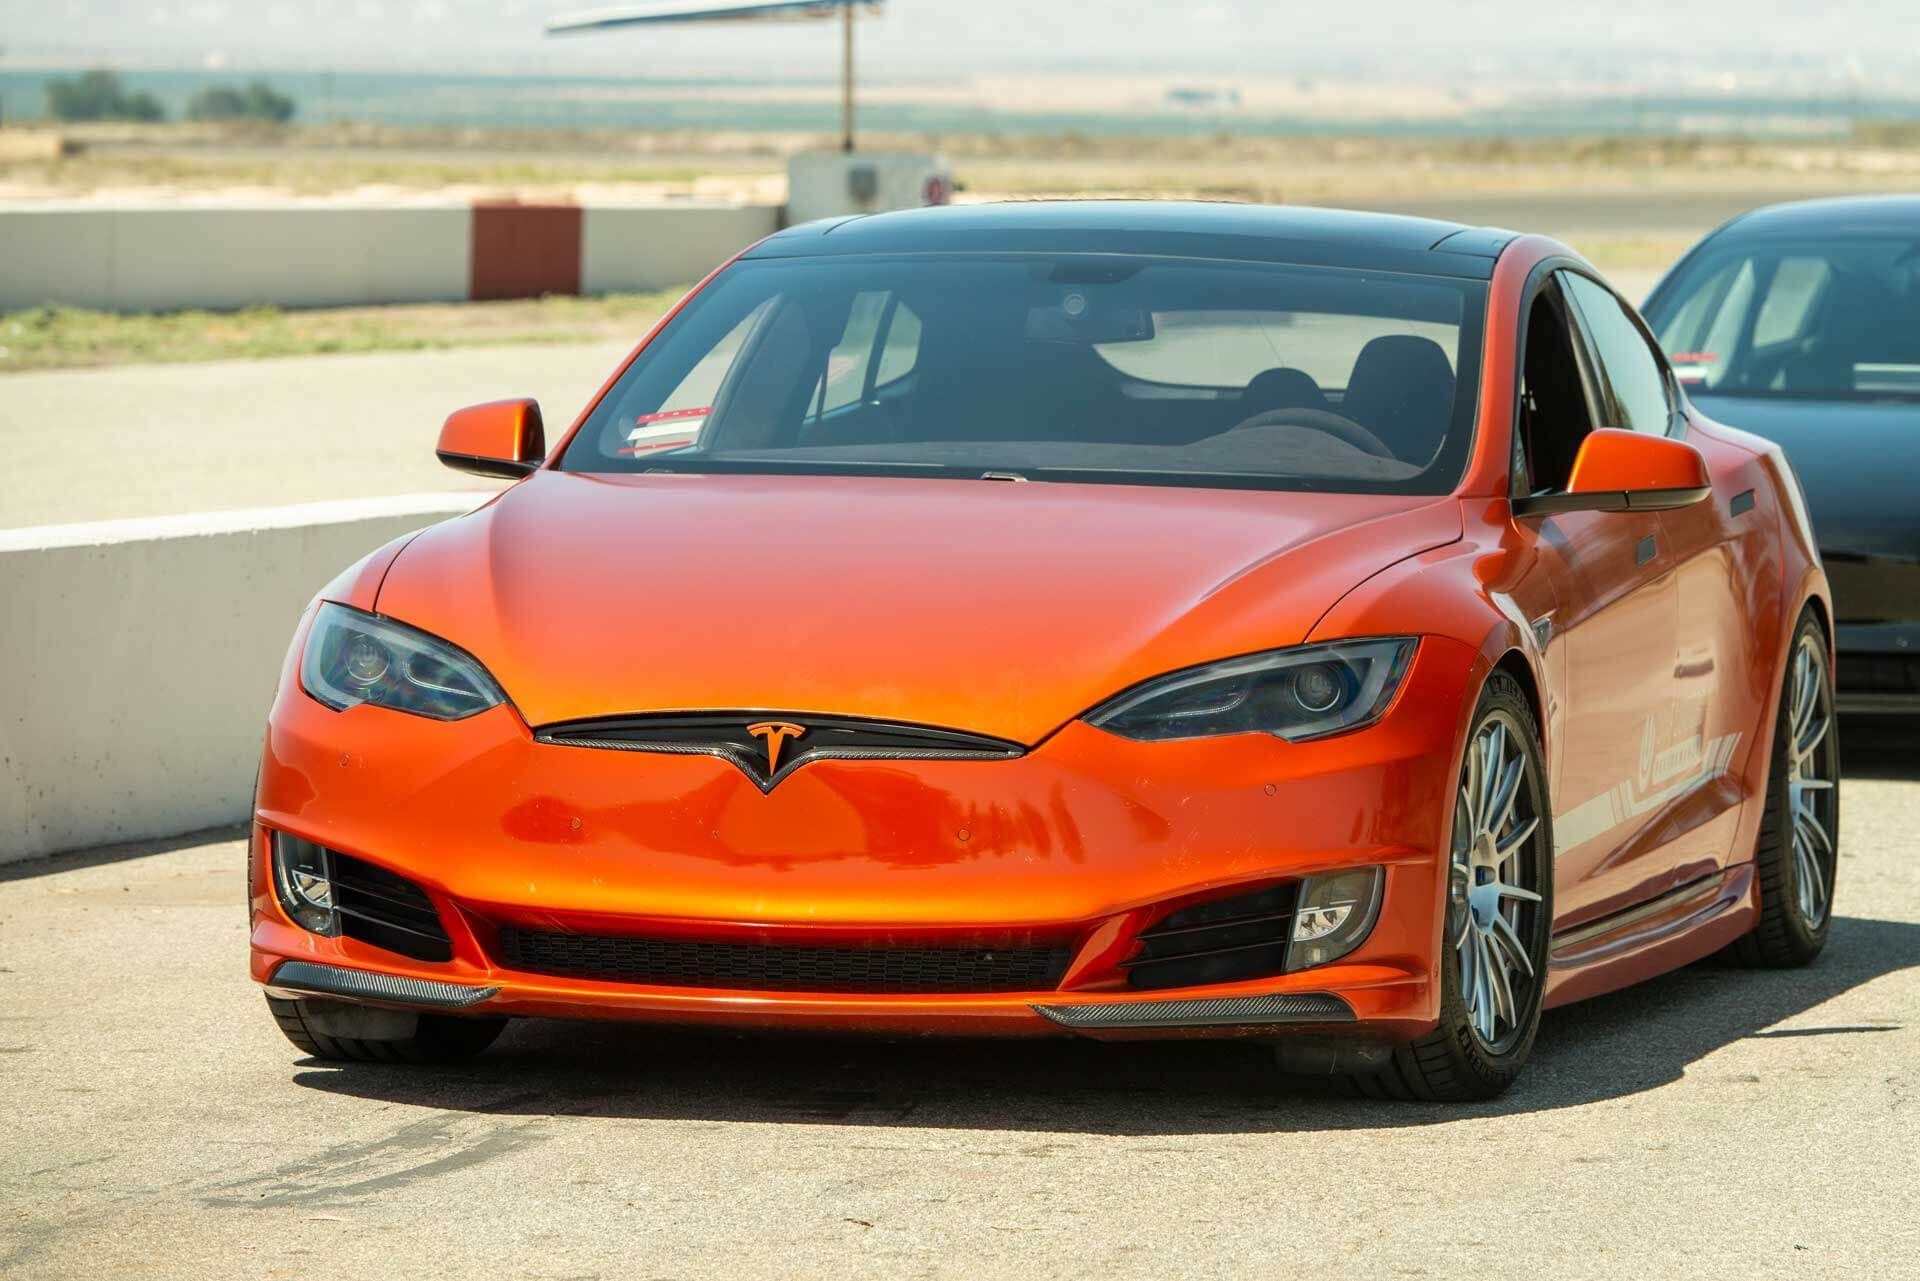 Unplugged Performance Refresh Front Fascia System For Tesla Model S Tesla Model S Tesla Tesla Model